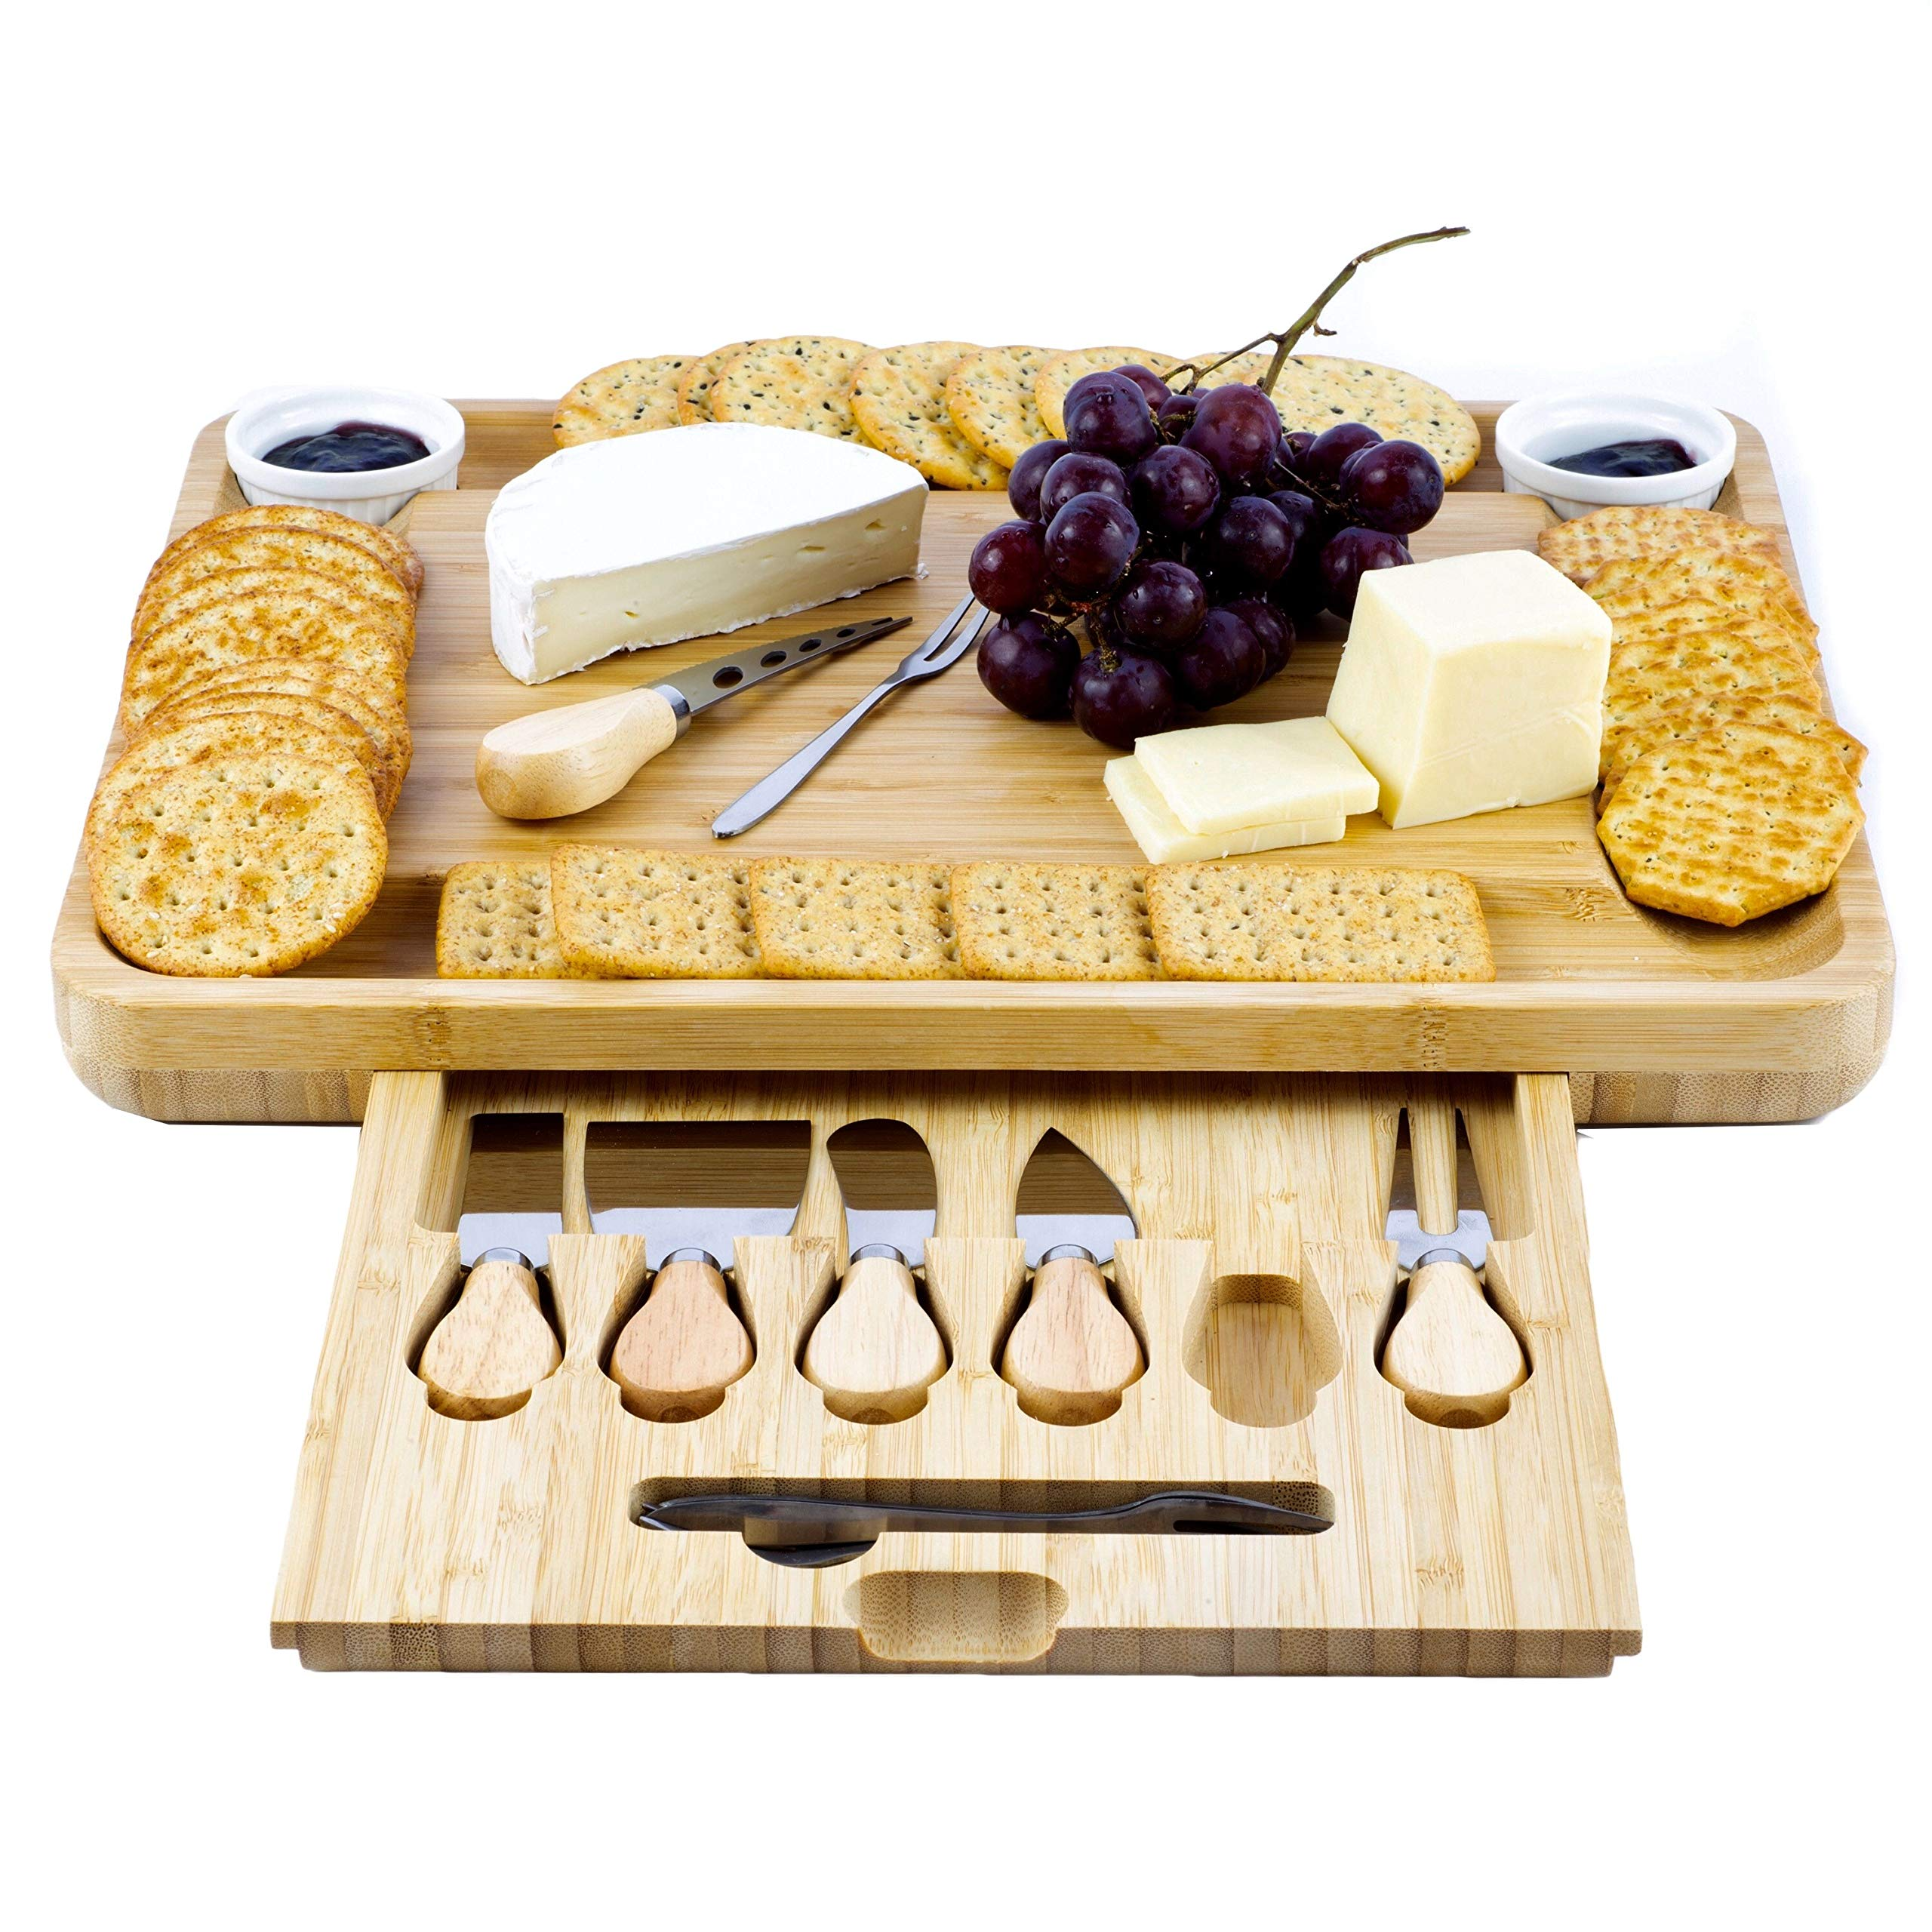 BeamShops XL Cheese Board And Knife Set - Natural Bamboo Charcuterie Board - Excellent Cheese Tray - Large Wooden Cheeseboard With 6 x Knives, 4 x Forks - Wedding And House Warming Presents by BeamShops (Image #1)